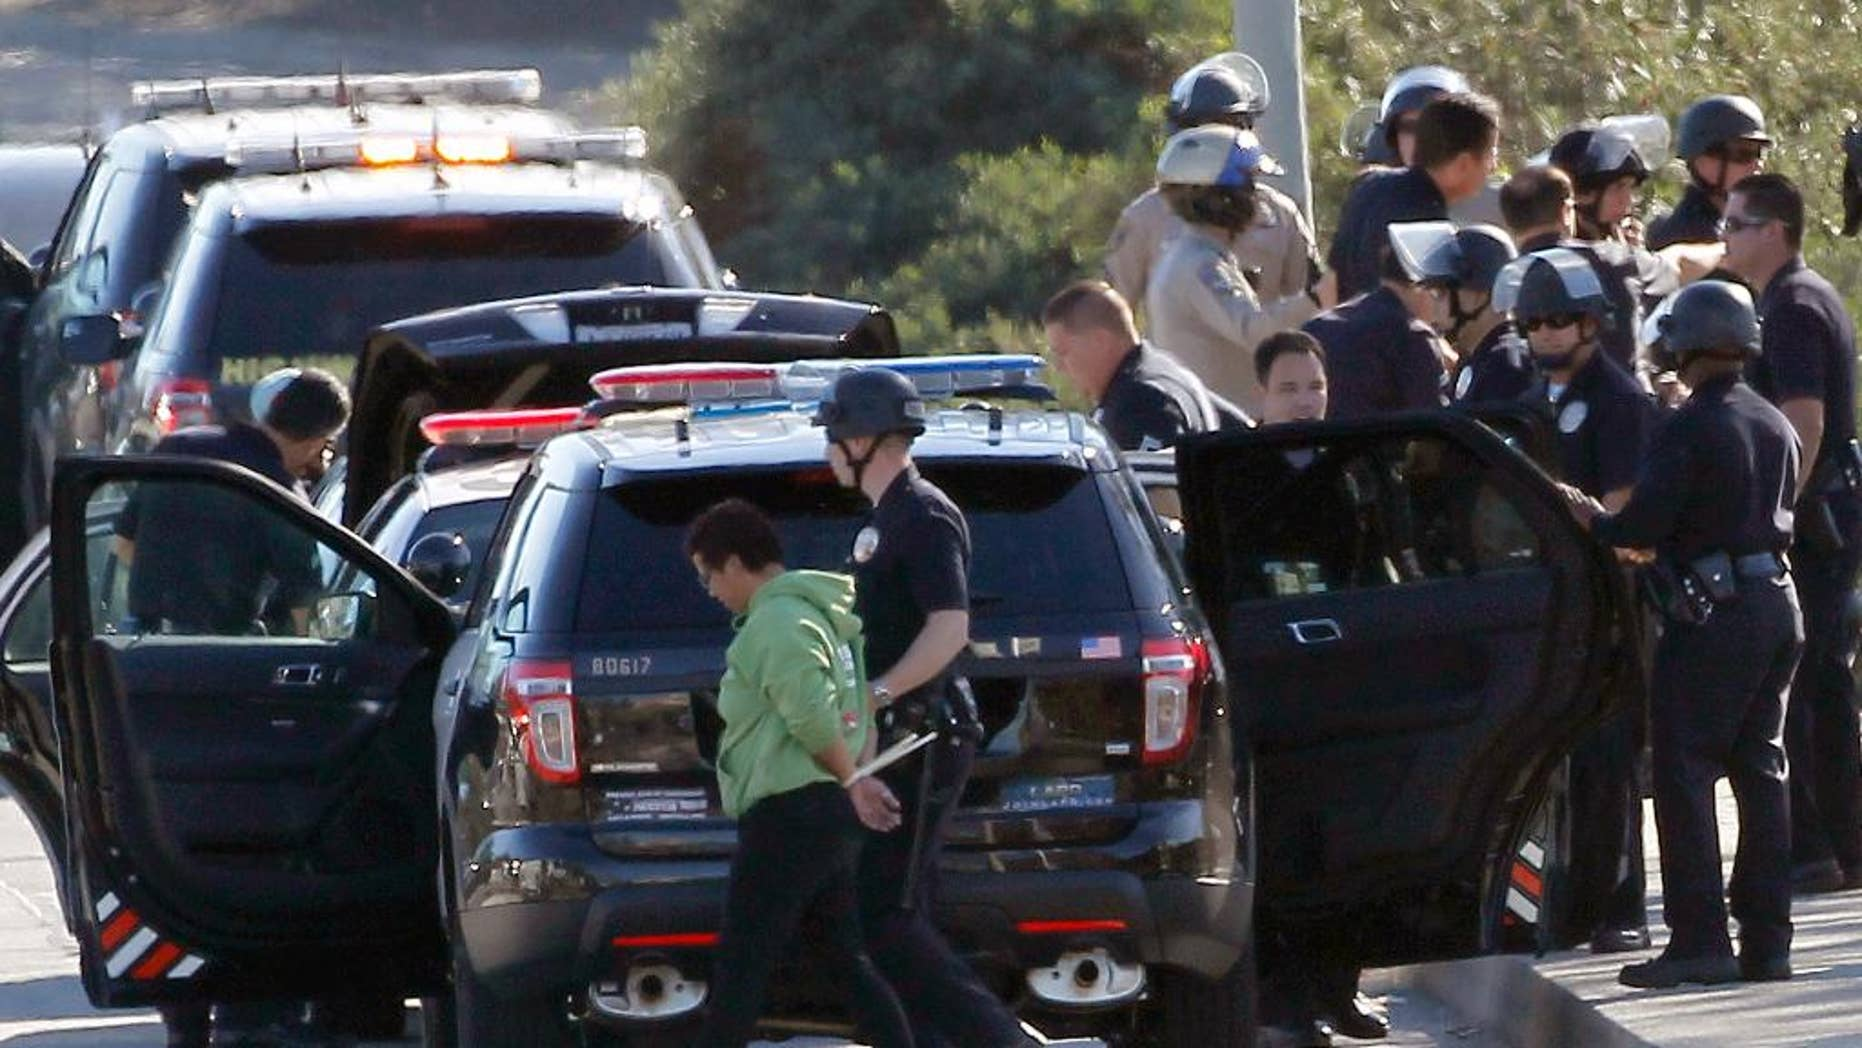 Nov. 26, 2014: A protestor is handcuffed and taken away by a police officer after the arrest of a small group of protesters who sat down in a bus lane alongside the U.S. 101.